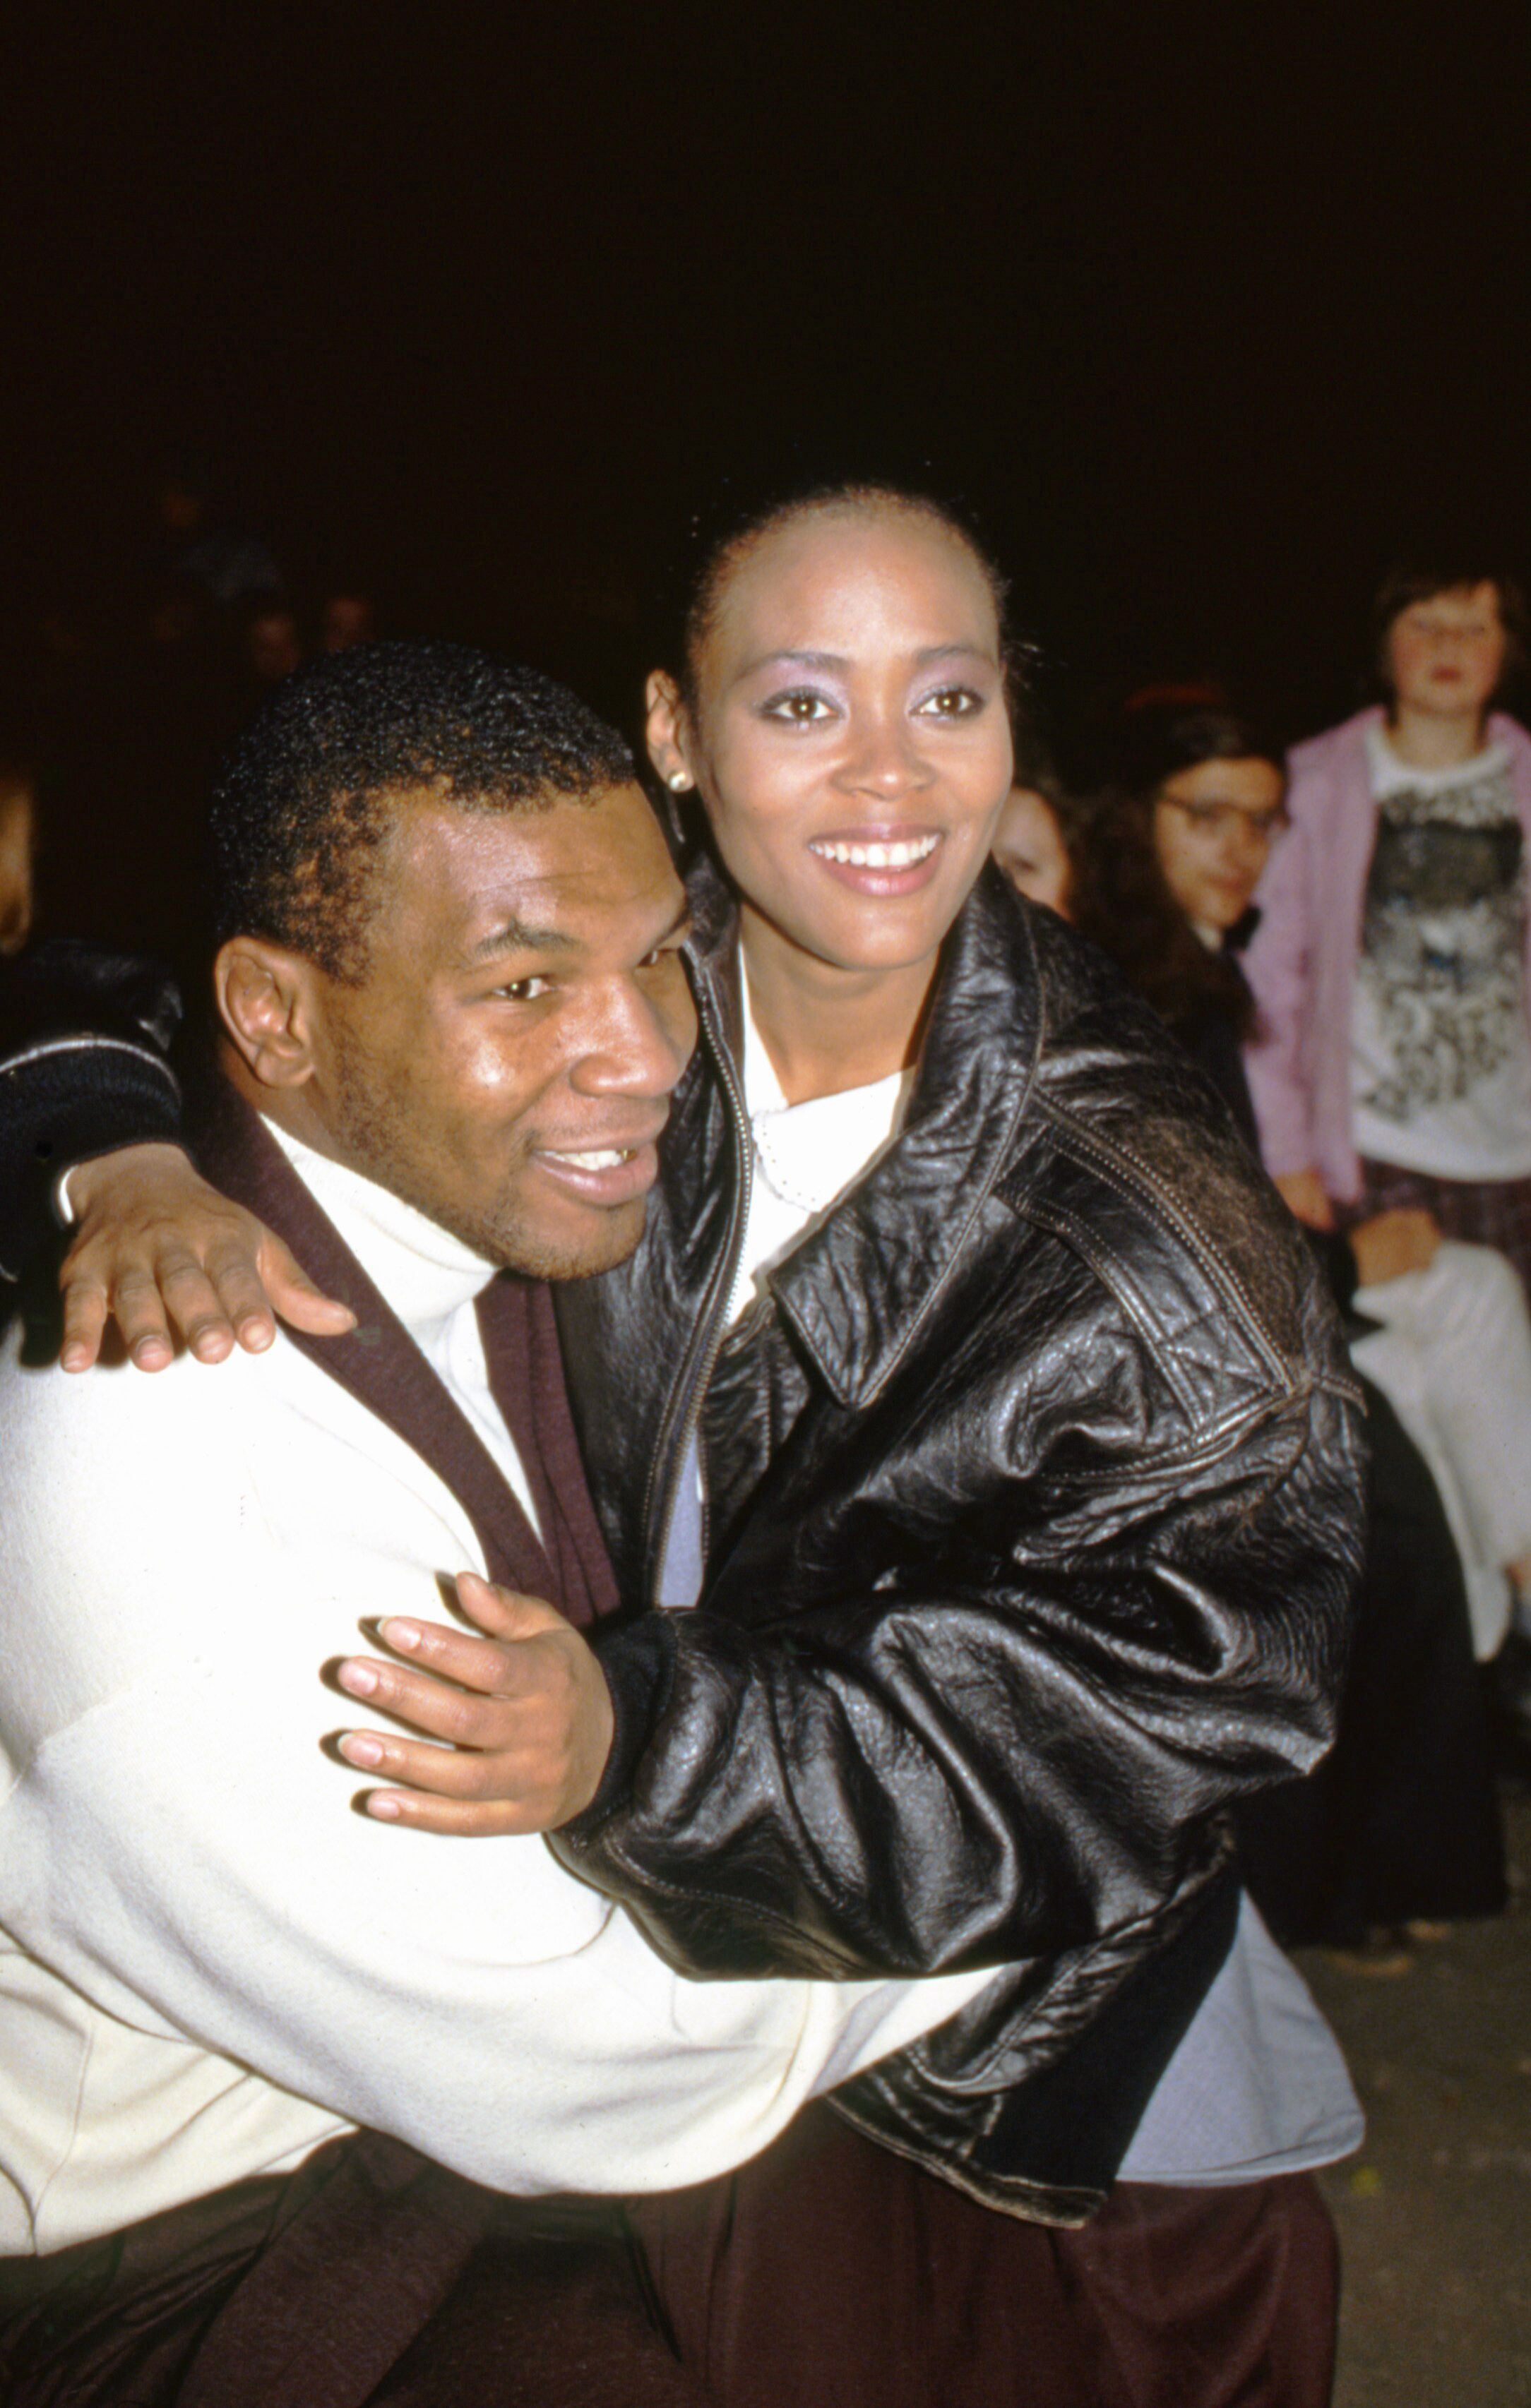 Mike Tyson with Robin Givens  in Moscow on September 15, 1988 | Source: Getty Images